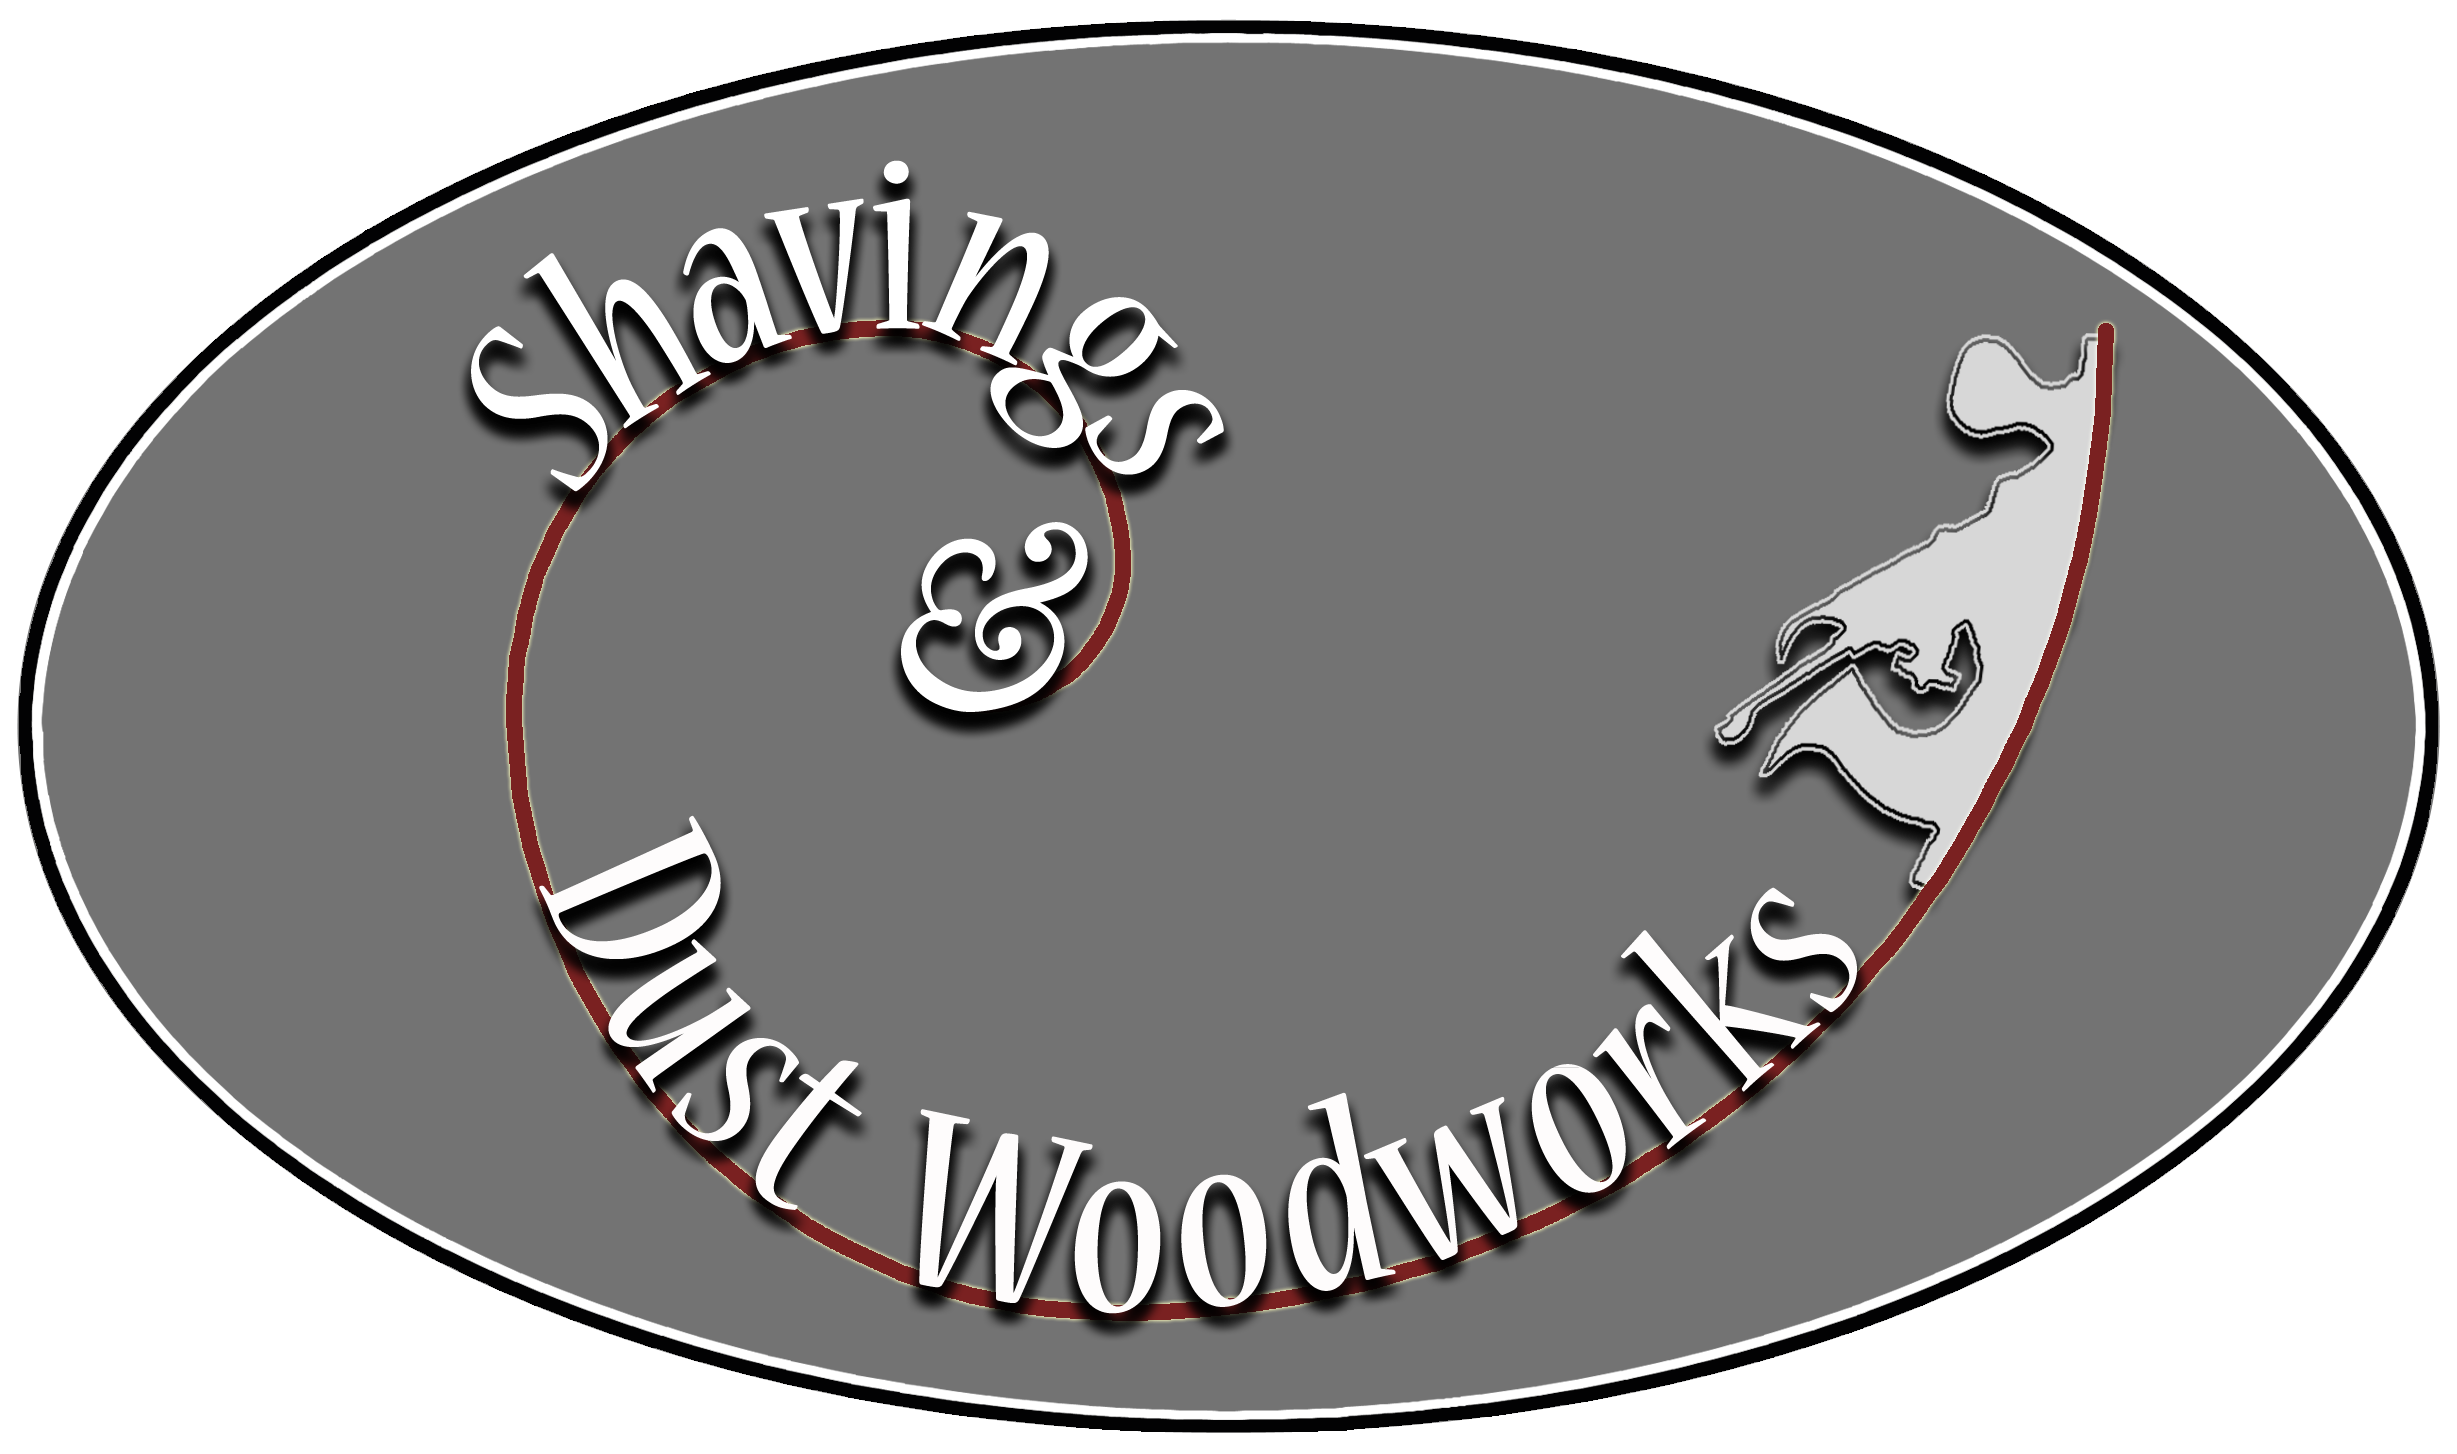 Shavings and Dust Woodworks